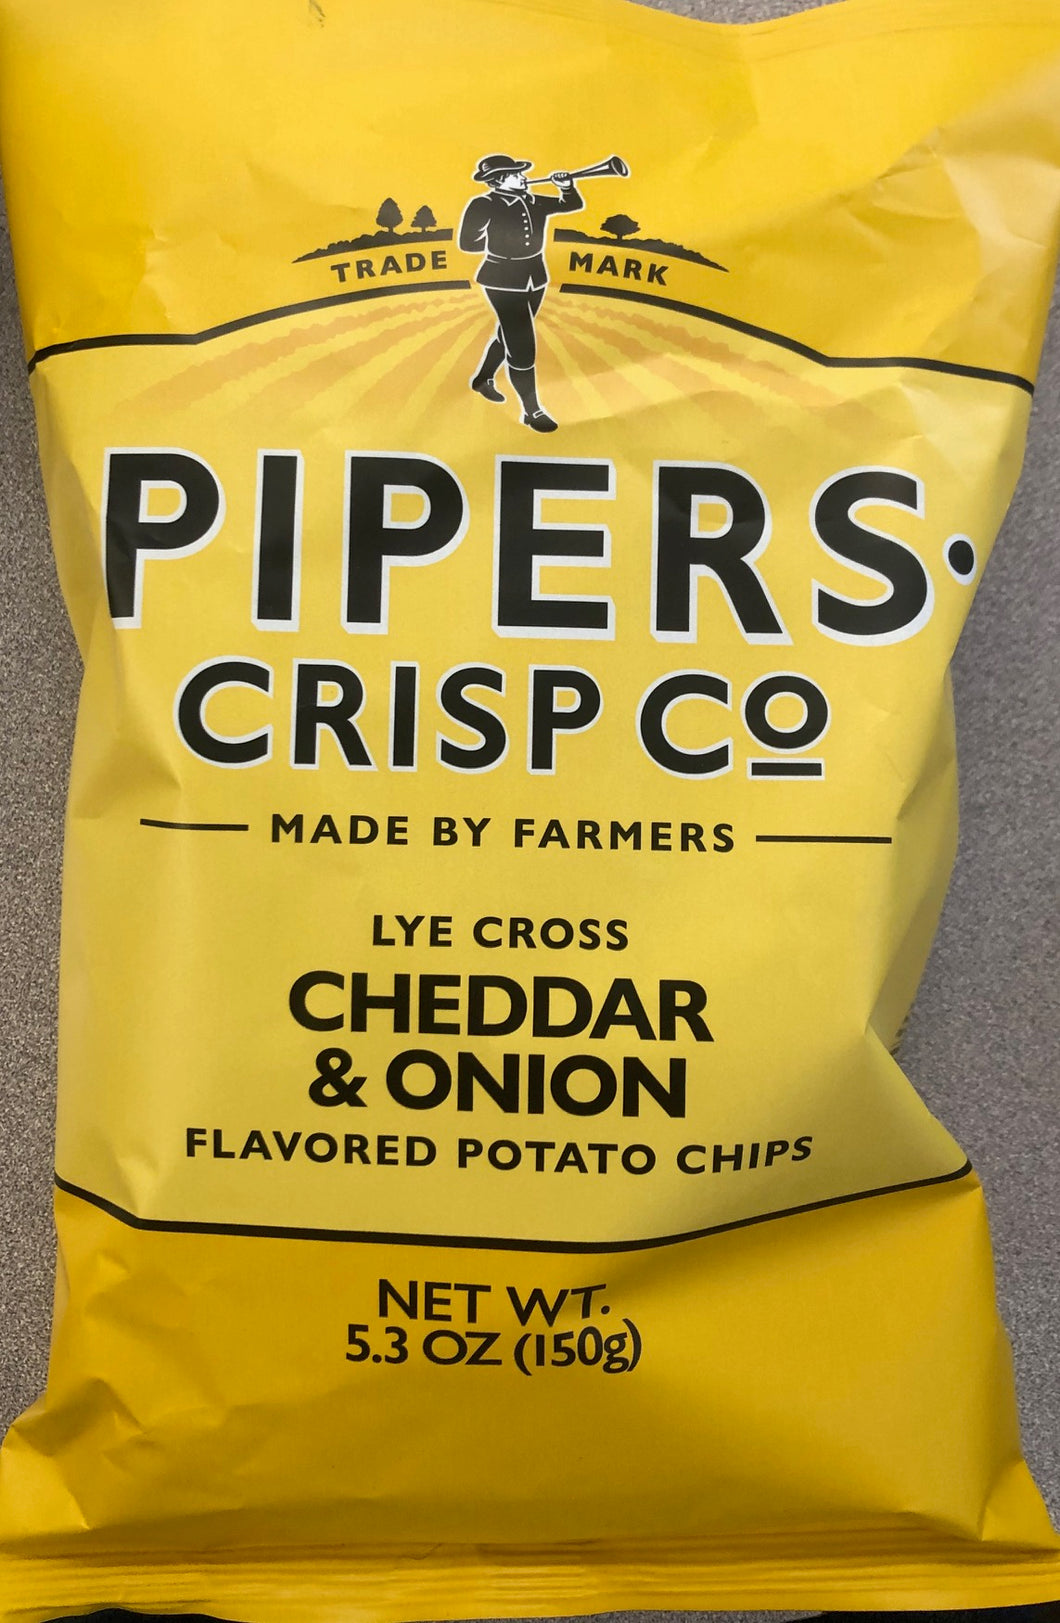 Pipers Crisps Cheddar & Onion 5.3oz Bag